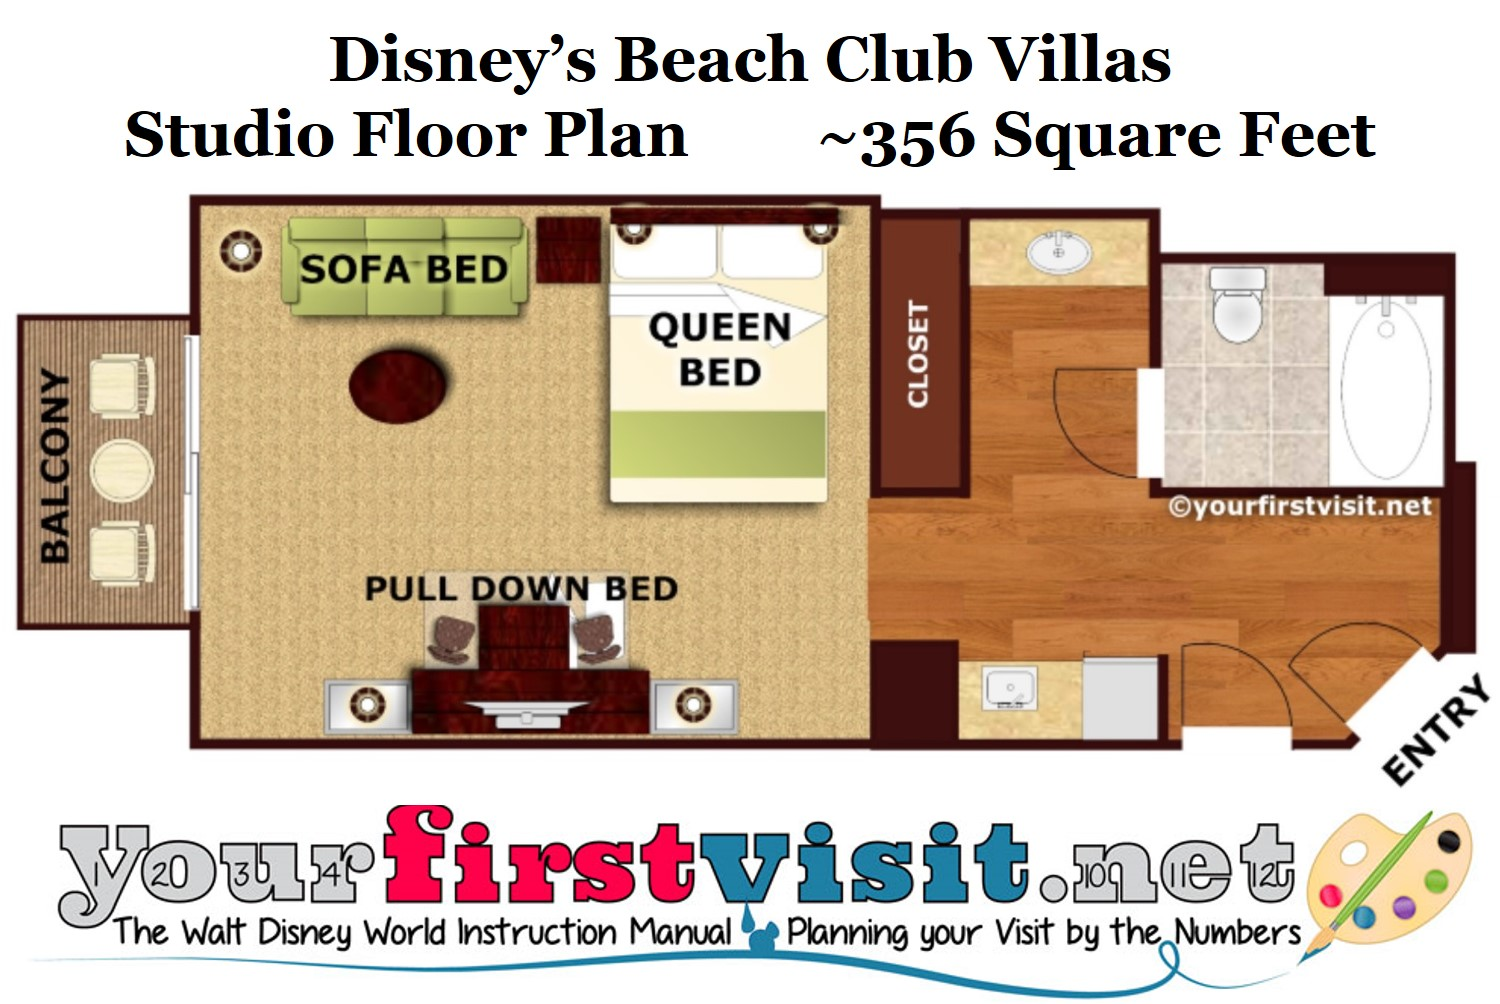 Disneys Beach Club Villas Renovated Studio Floor Plan